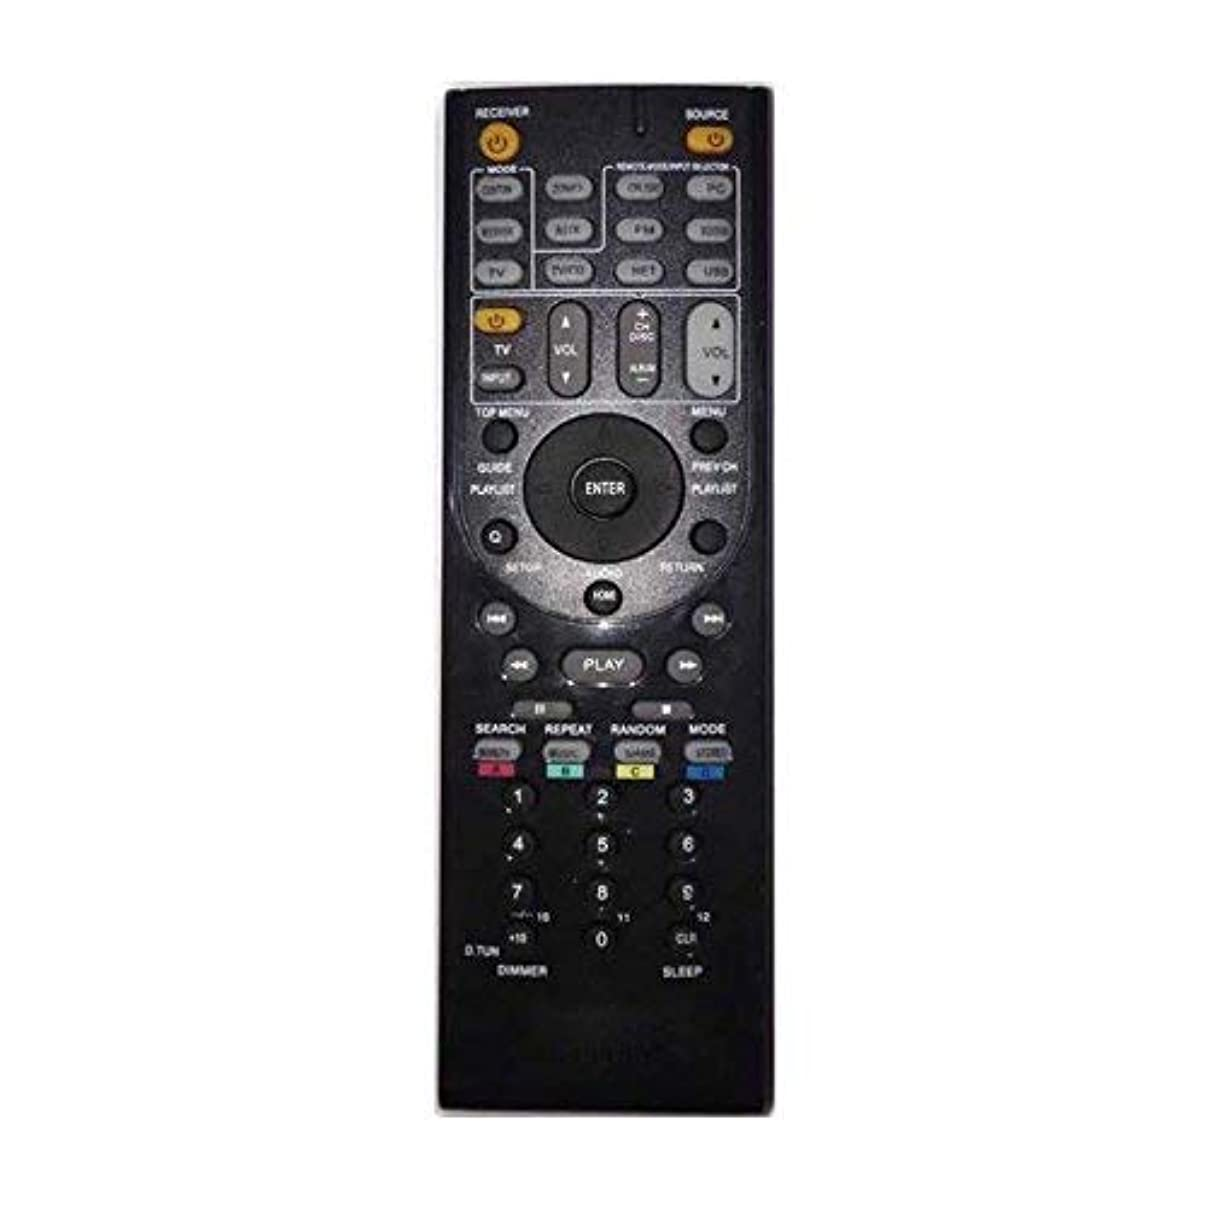 Replaced AV Remote Control Compatible For Onkyo RC-773M TX-NR535 TX-NR727 TX-NR737 Audio Video A/V Audio Video Receiver